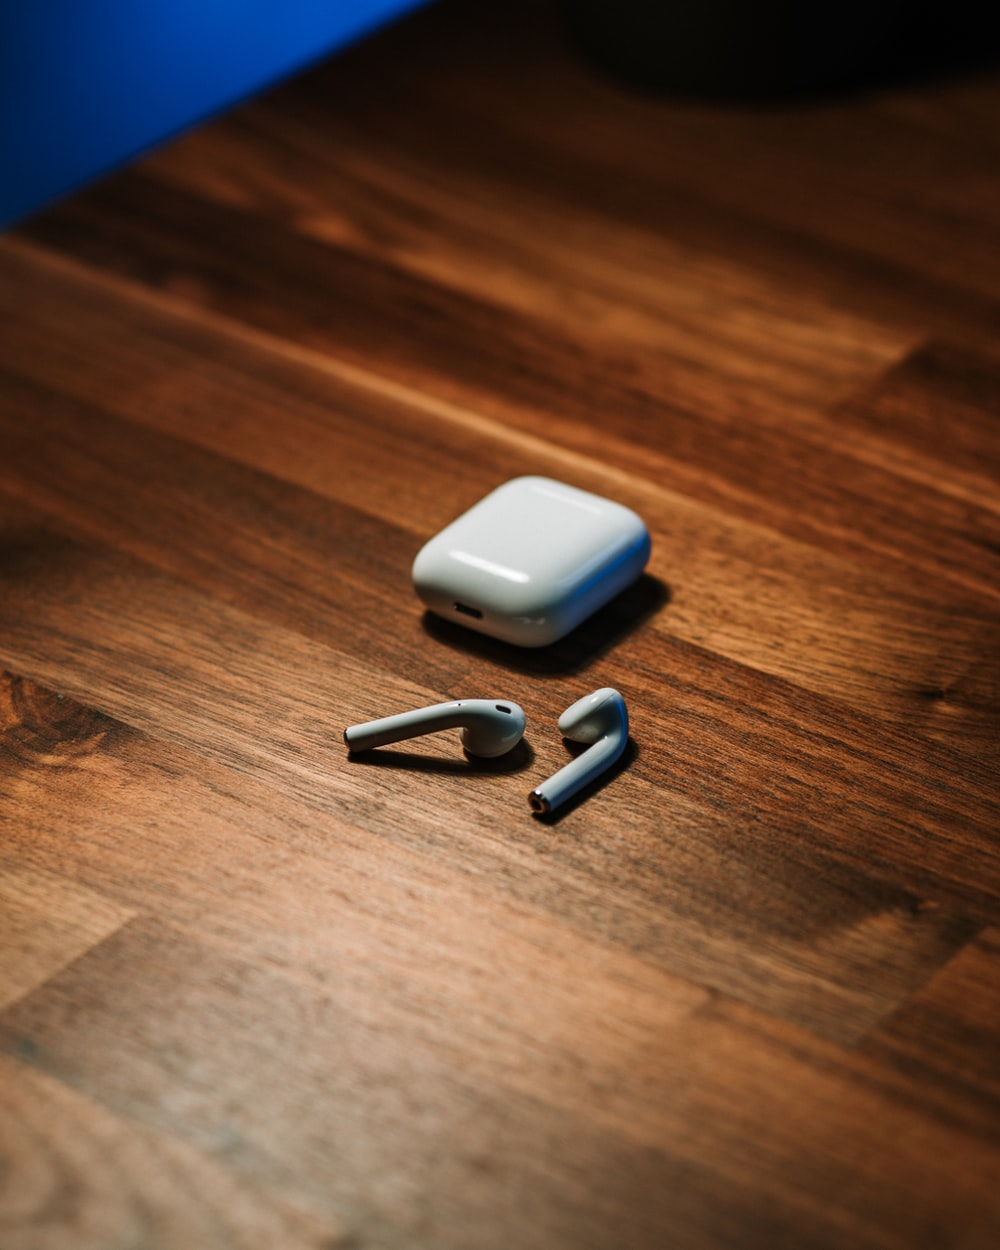 white apple airpods on brown wooden table